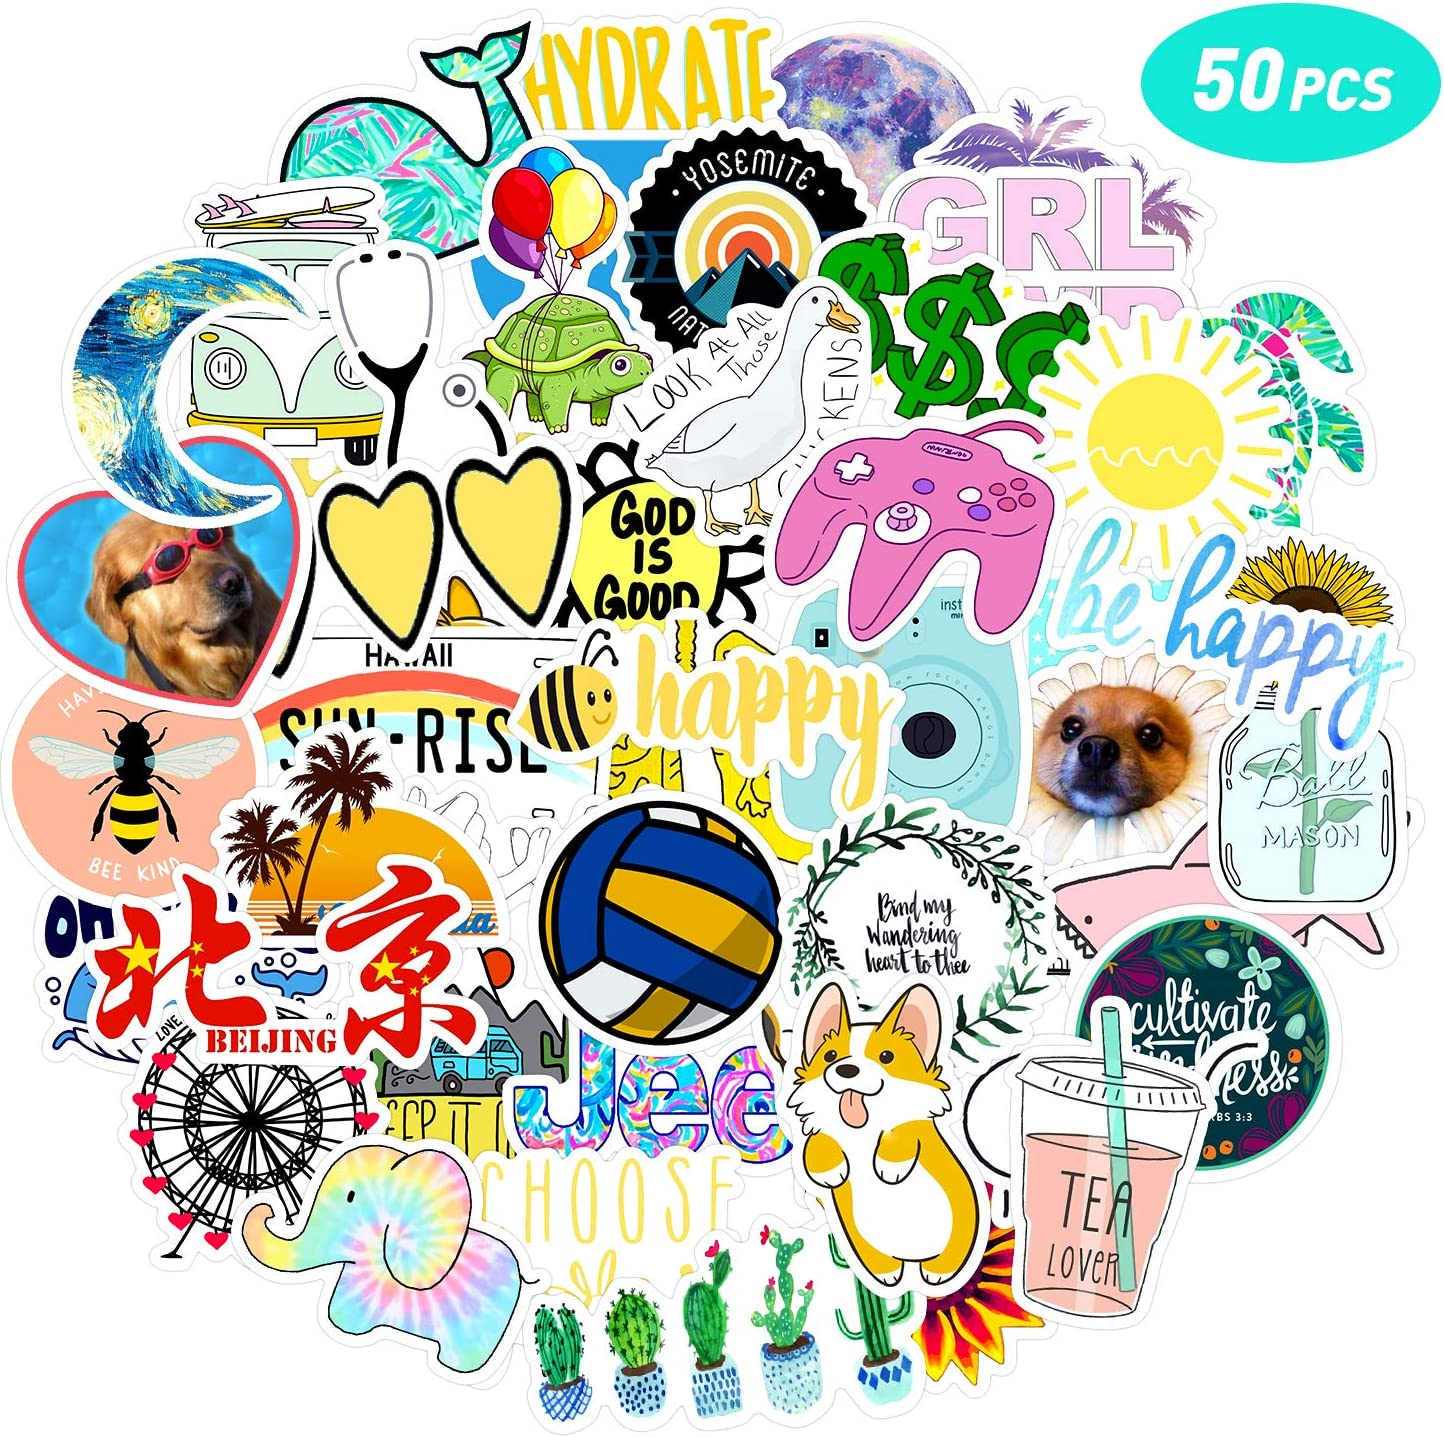 Enjoyee 50 Pcs VSCO Vinyl Cute Cool Stickers for Hydro Flask, Water Bottle and Laptop - Suitable for Kids, Girls, Teens, Women (C1)